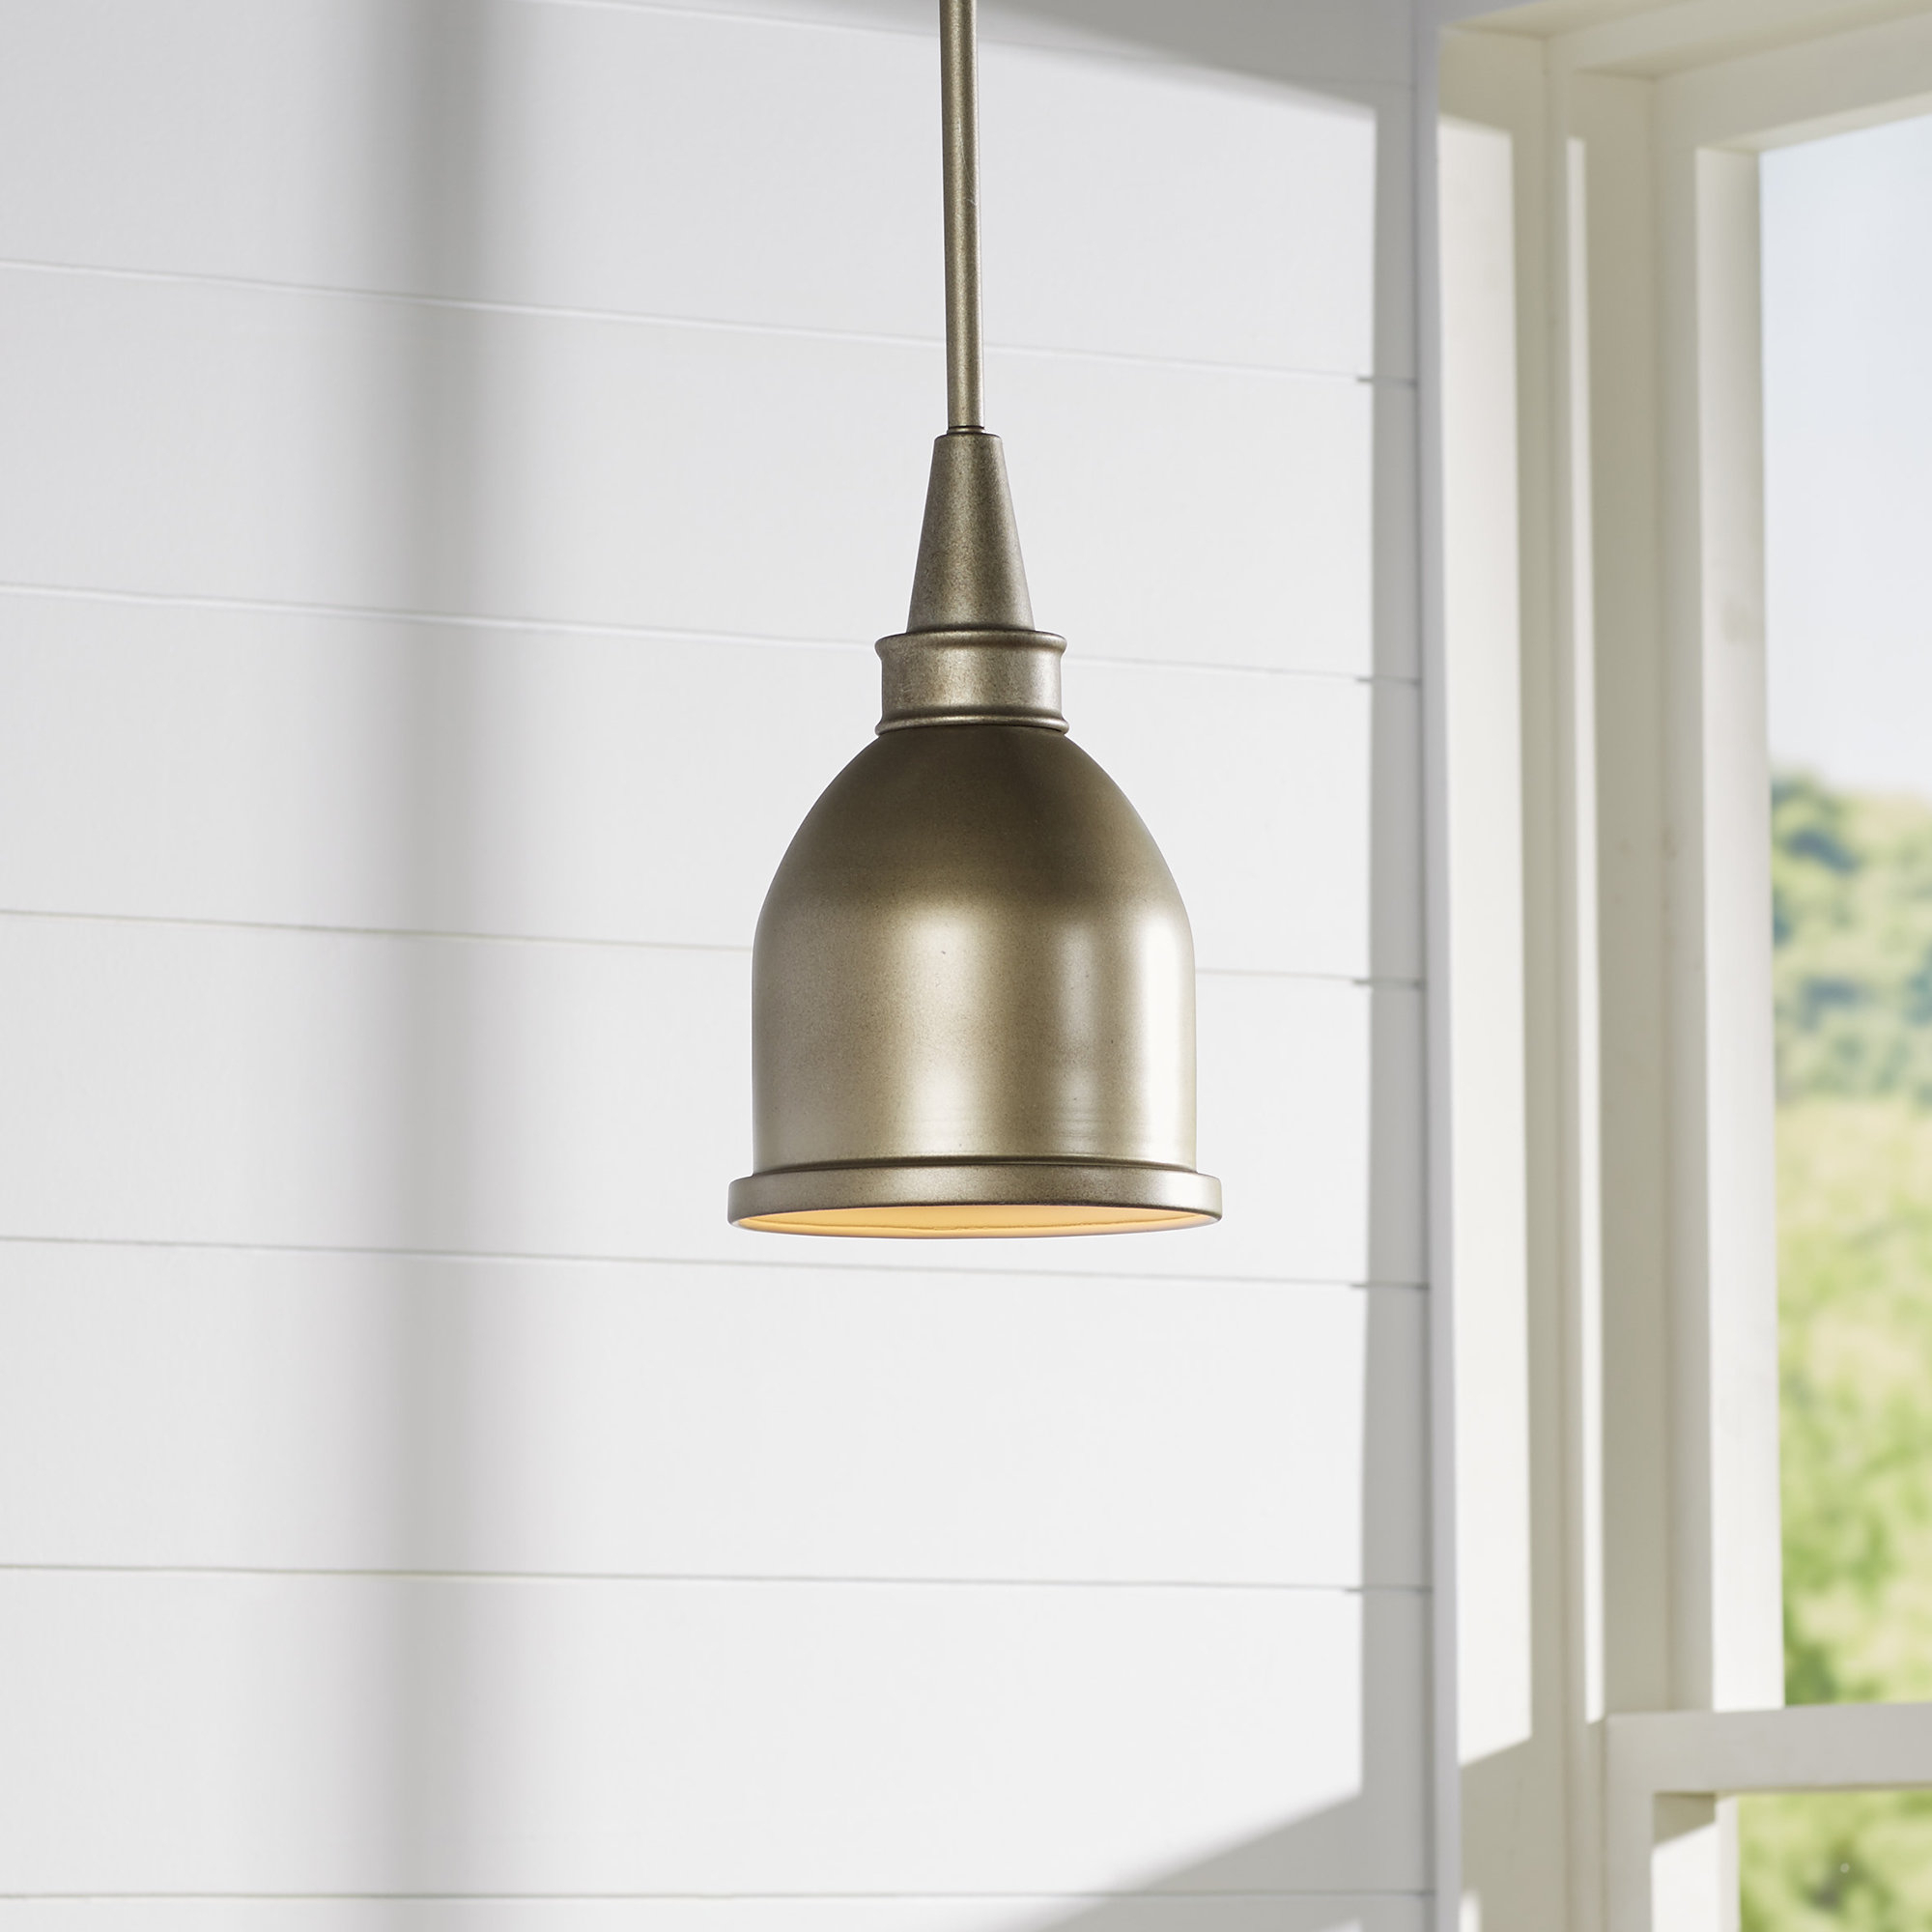 Manston 1 Light Single Bell Pendant With Regard To Recent Bundaberg 1 Light Single Bell Pendants (View 13 of 20)